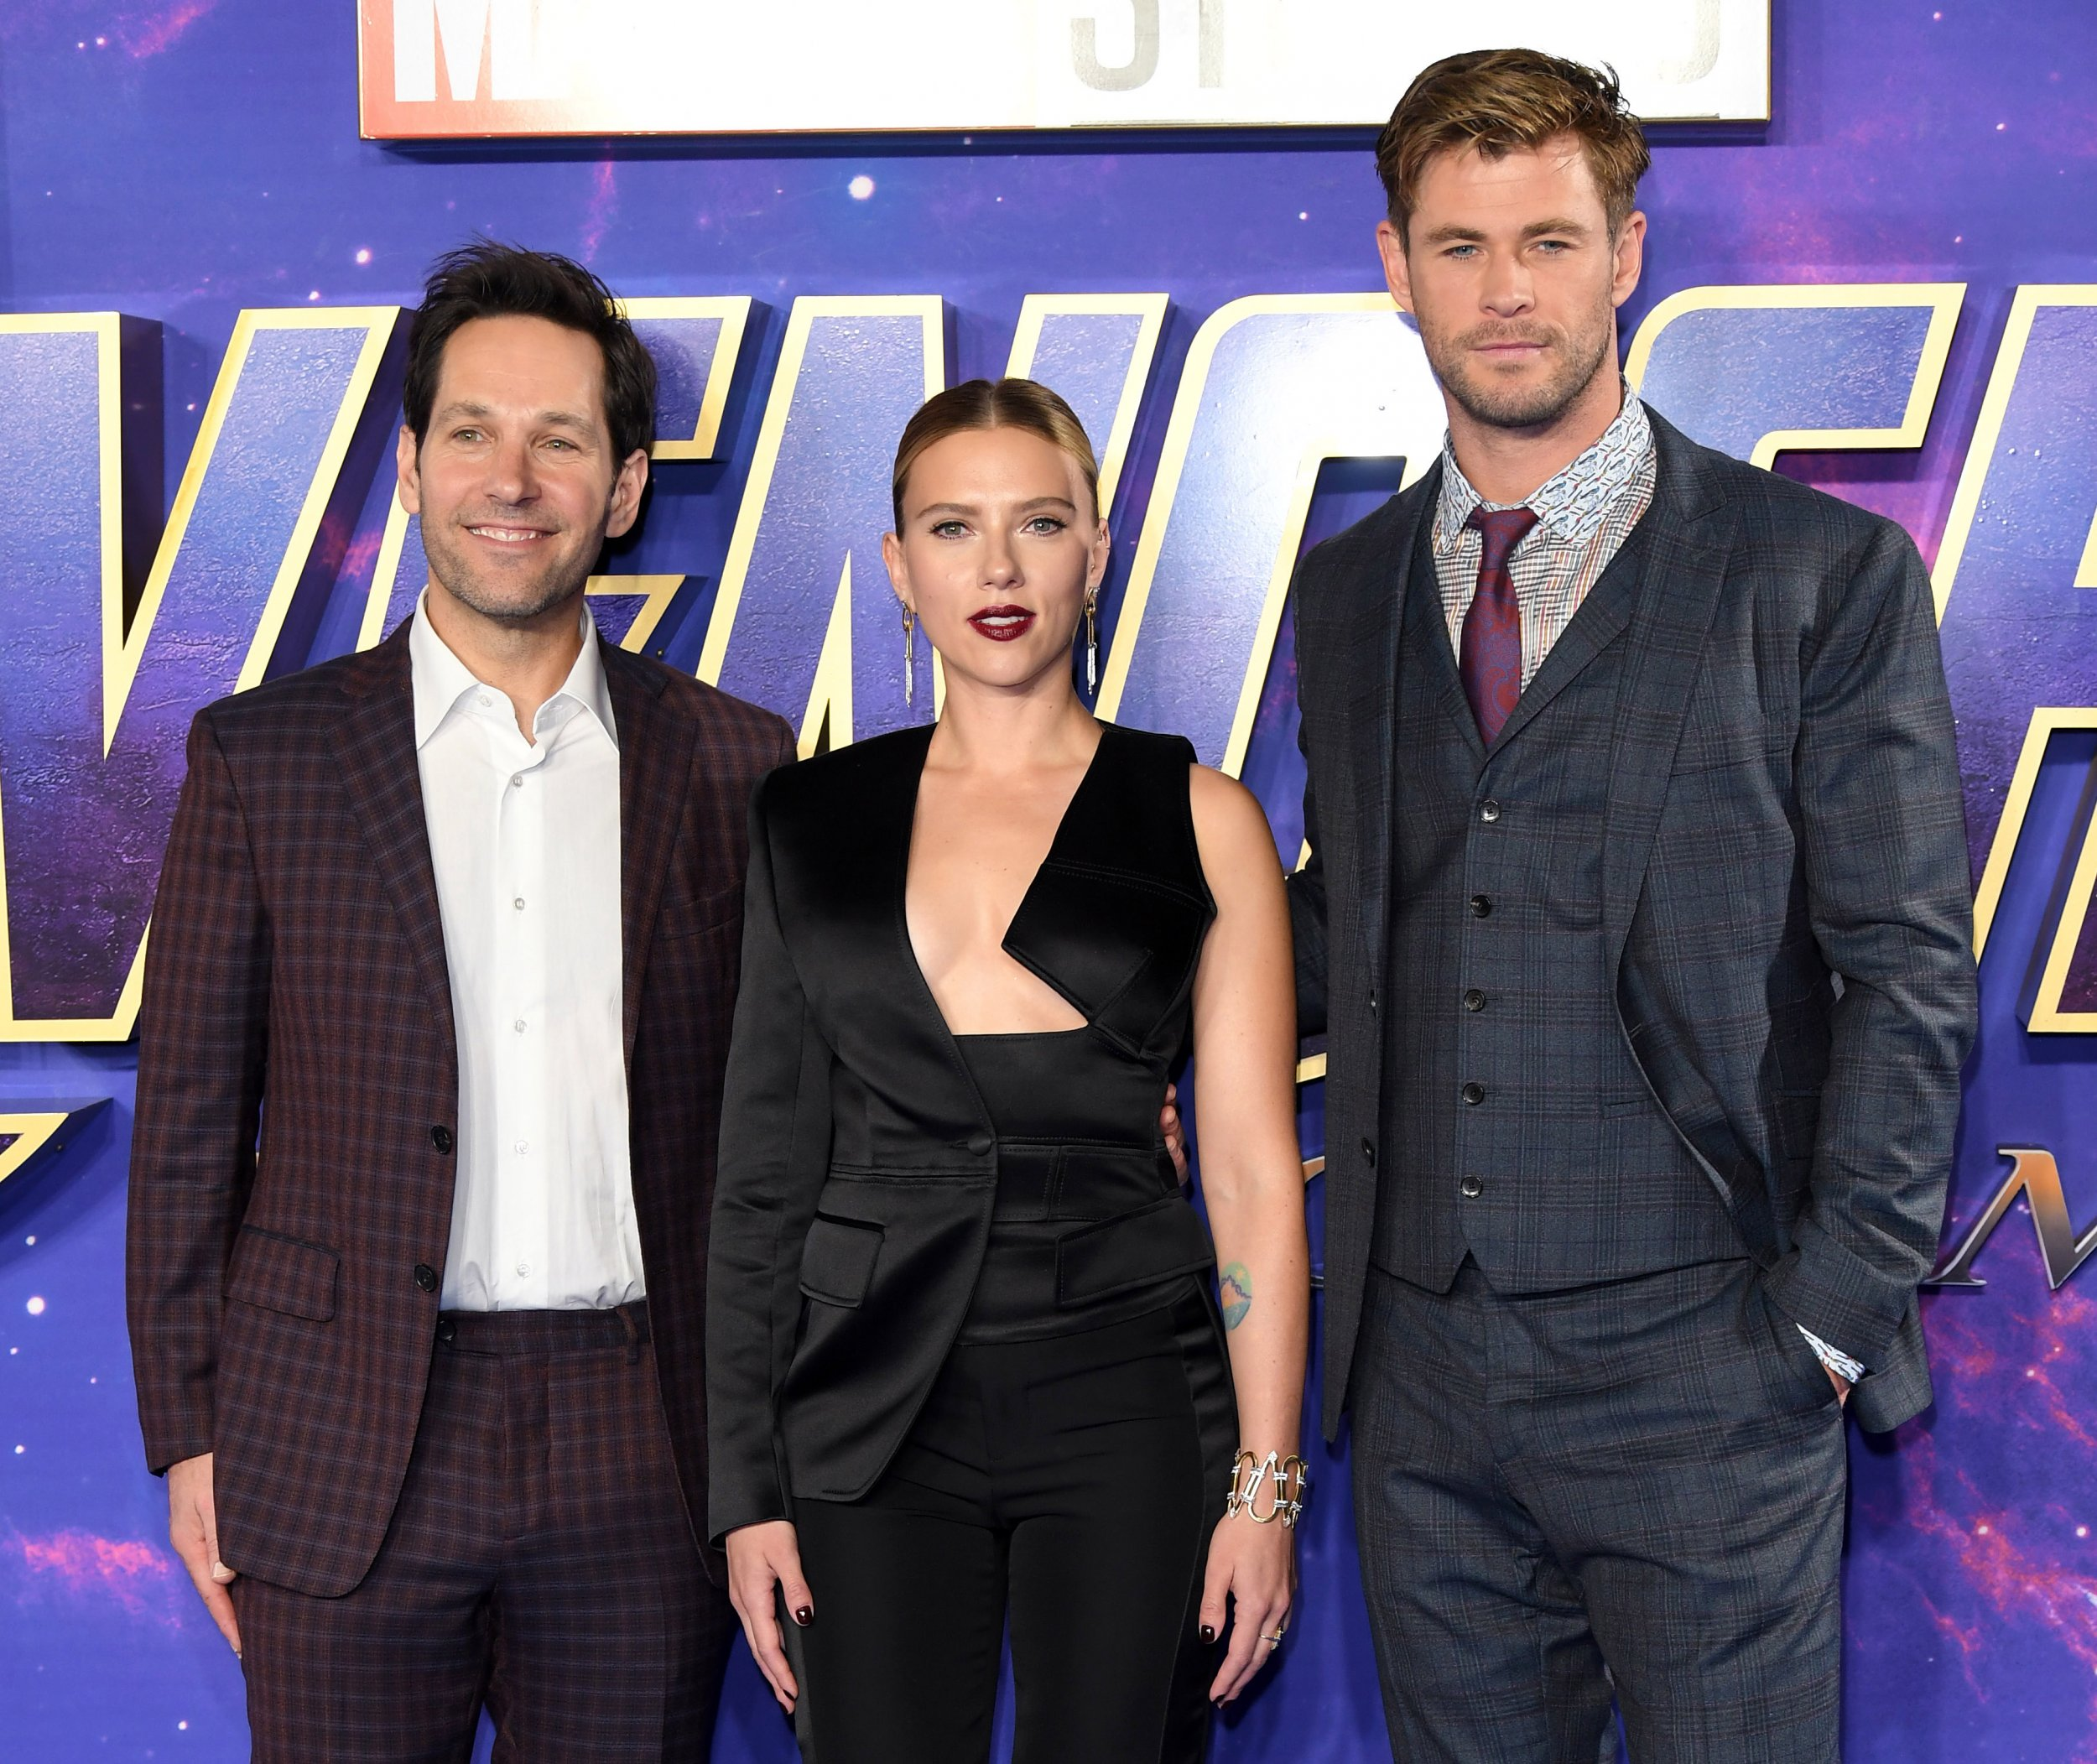 avengers: endgame, red carpet world premiere how to live stream